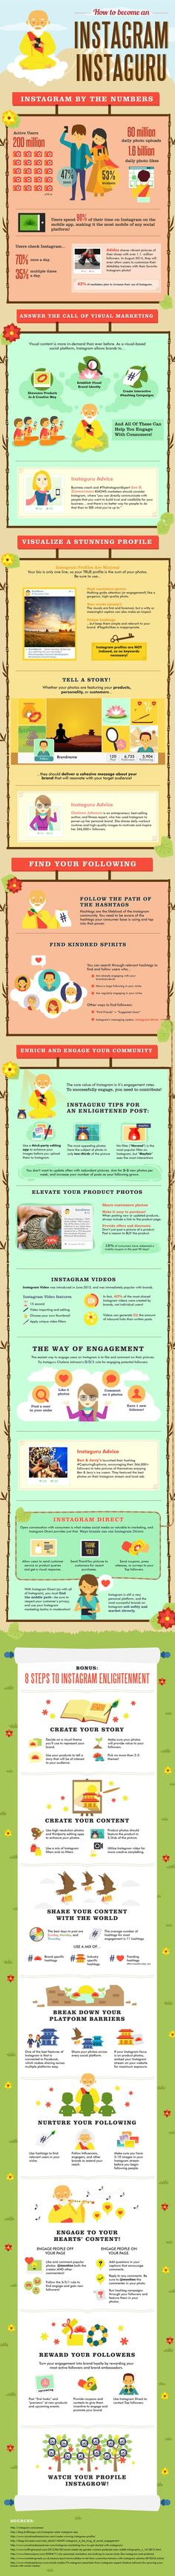 Do you ask yourself each day how you can gain more followers on Instagram? Here are some powerful tips on how to become a guru on Instagram marketing.